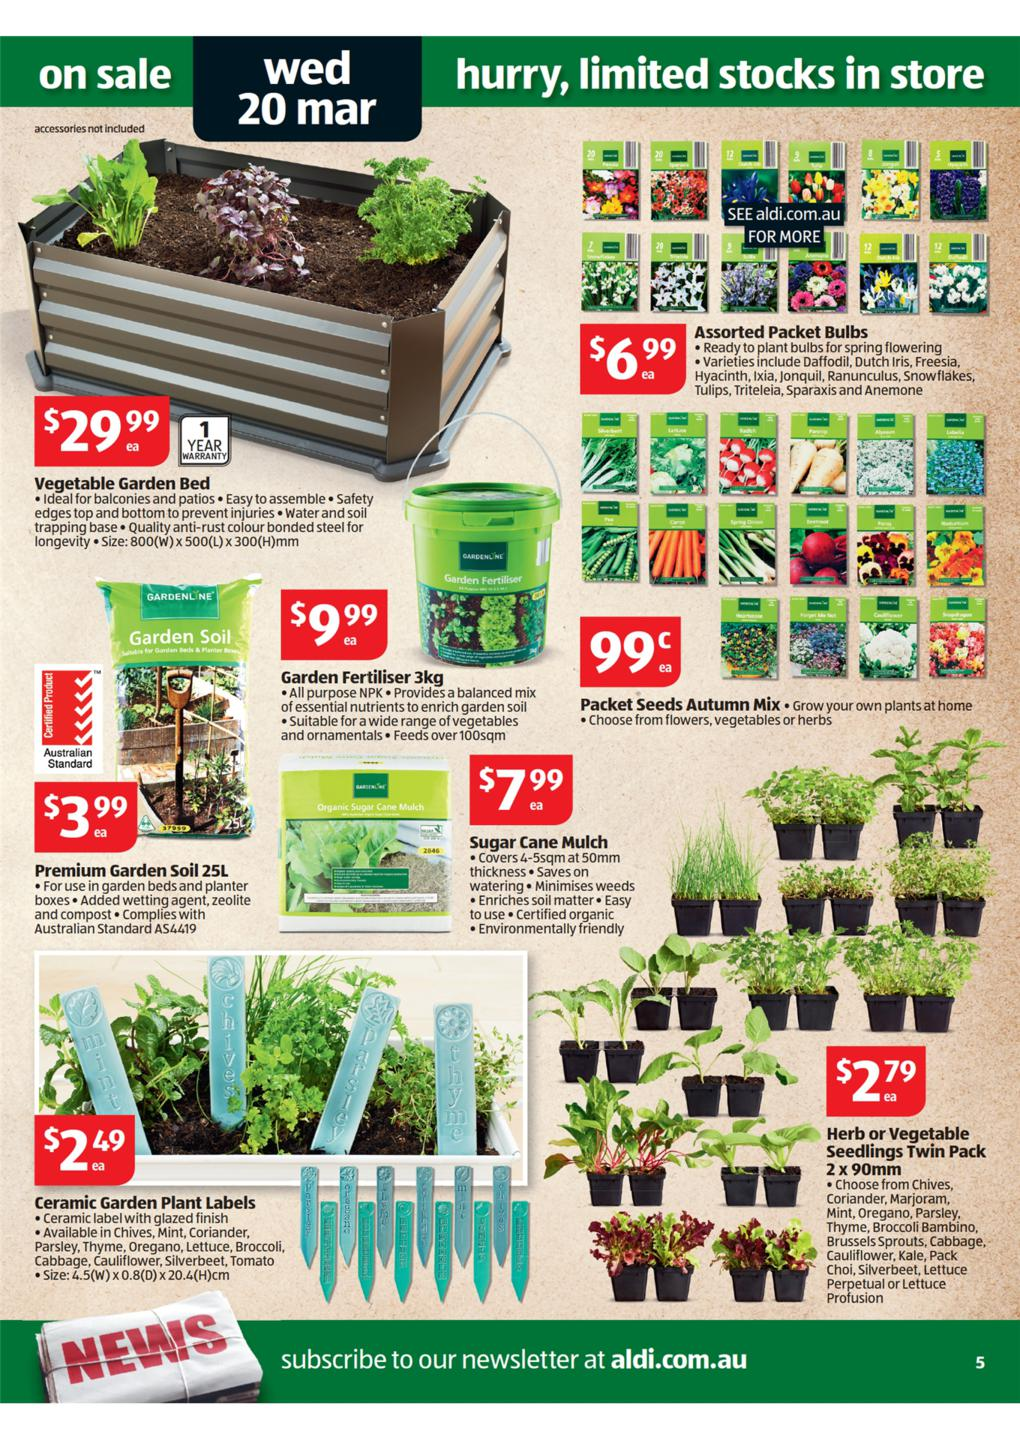 aldi catalogue - special buys week 12 2013 page 5